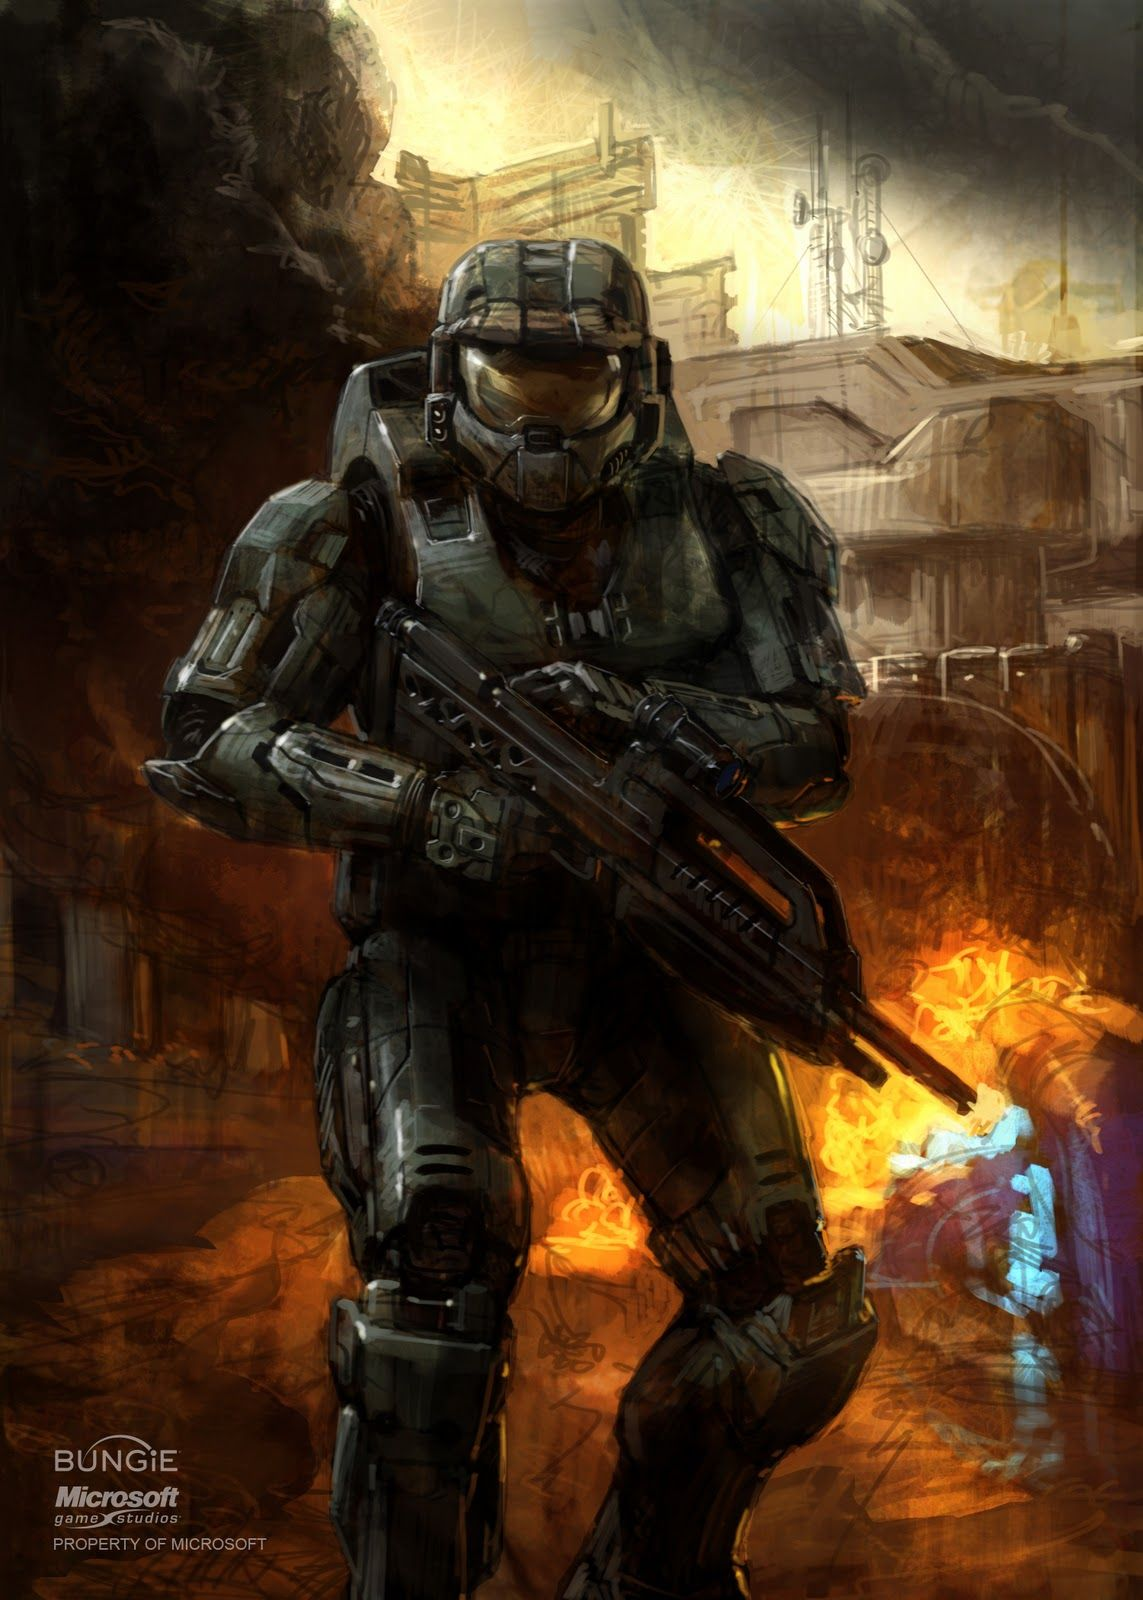 Master chief halo concept art isaac hannaford marine - Master chief in halo reach ...